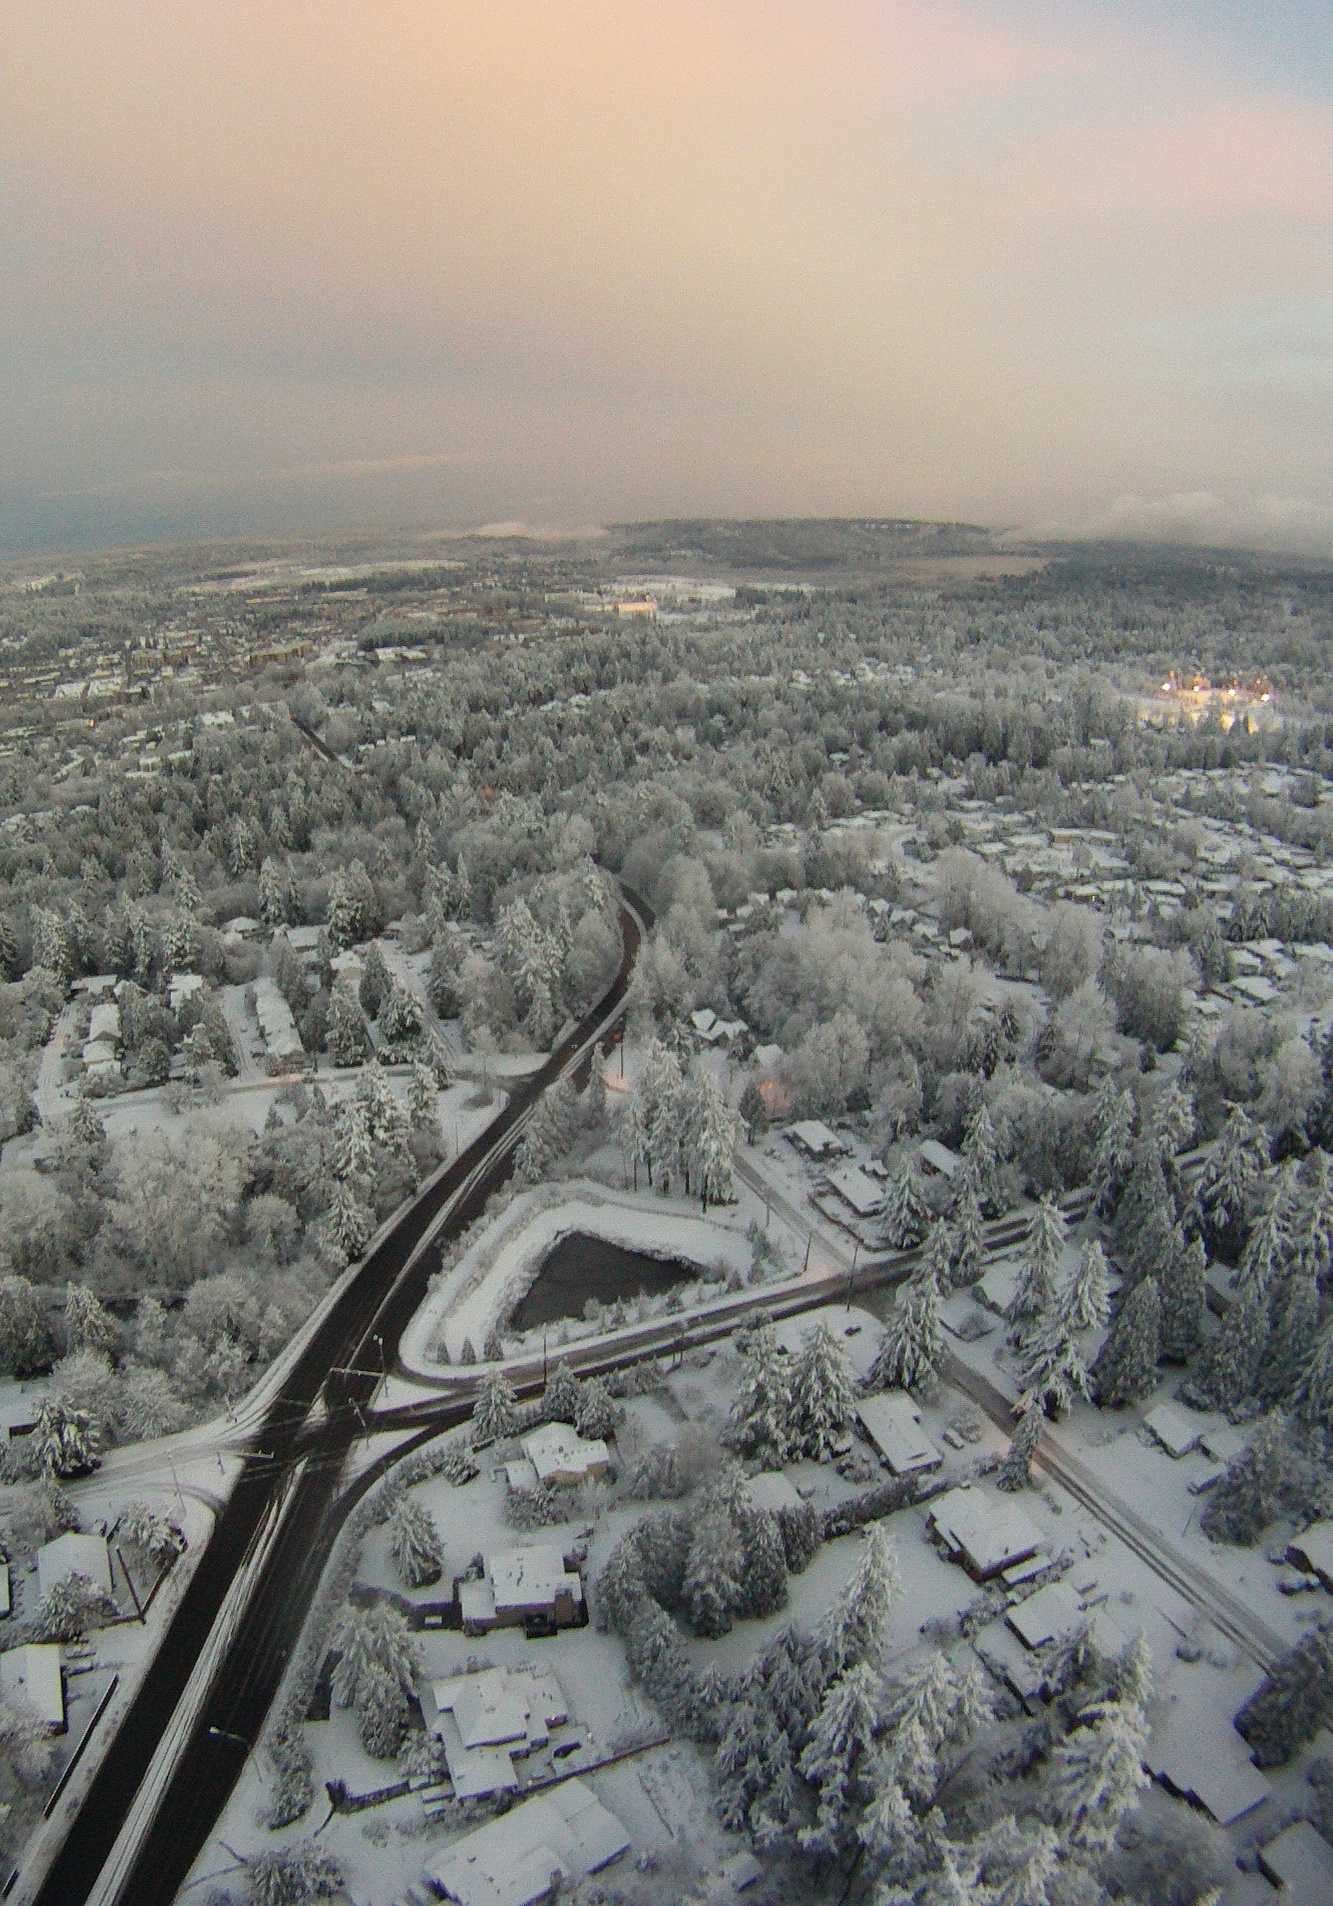 Behind The Scenes Teenager Captures Amazing Aerial Snow Pictures From R C Plane